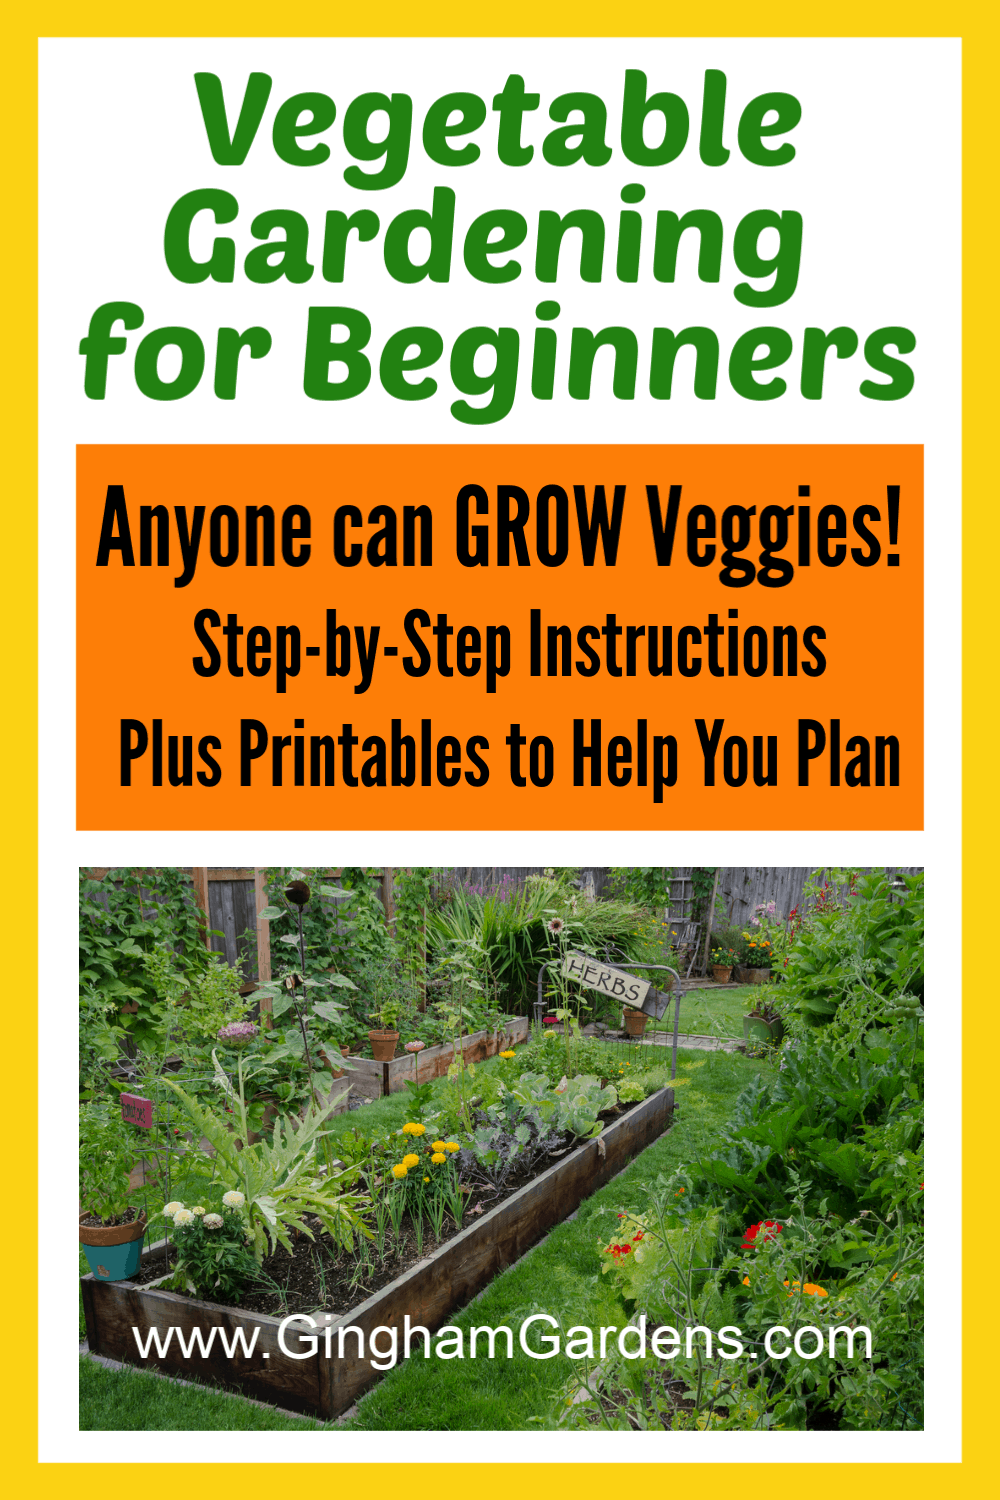 Image of Garden with Text Overlay - Vegetable Gardening for Beginners